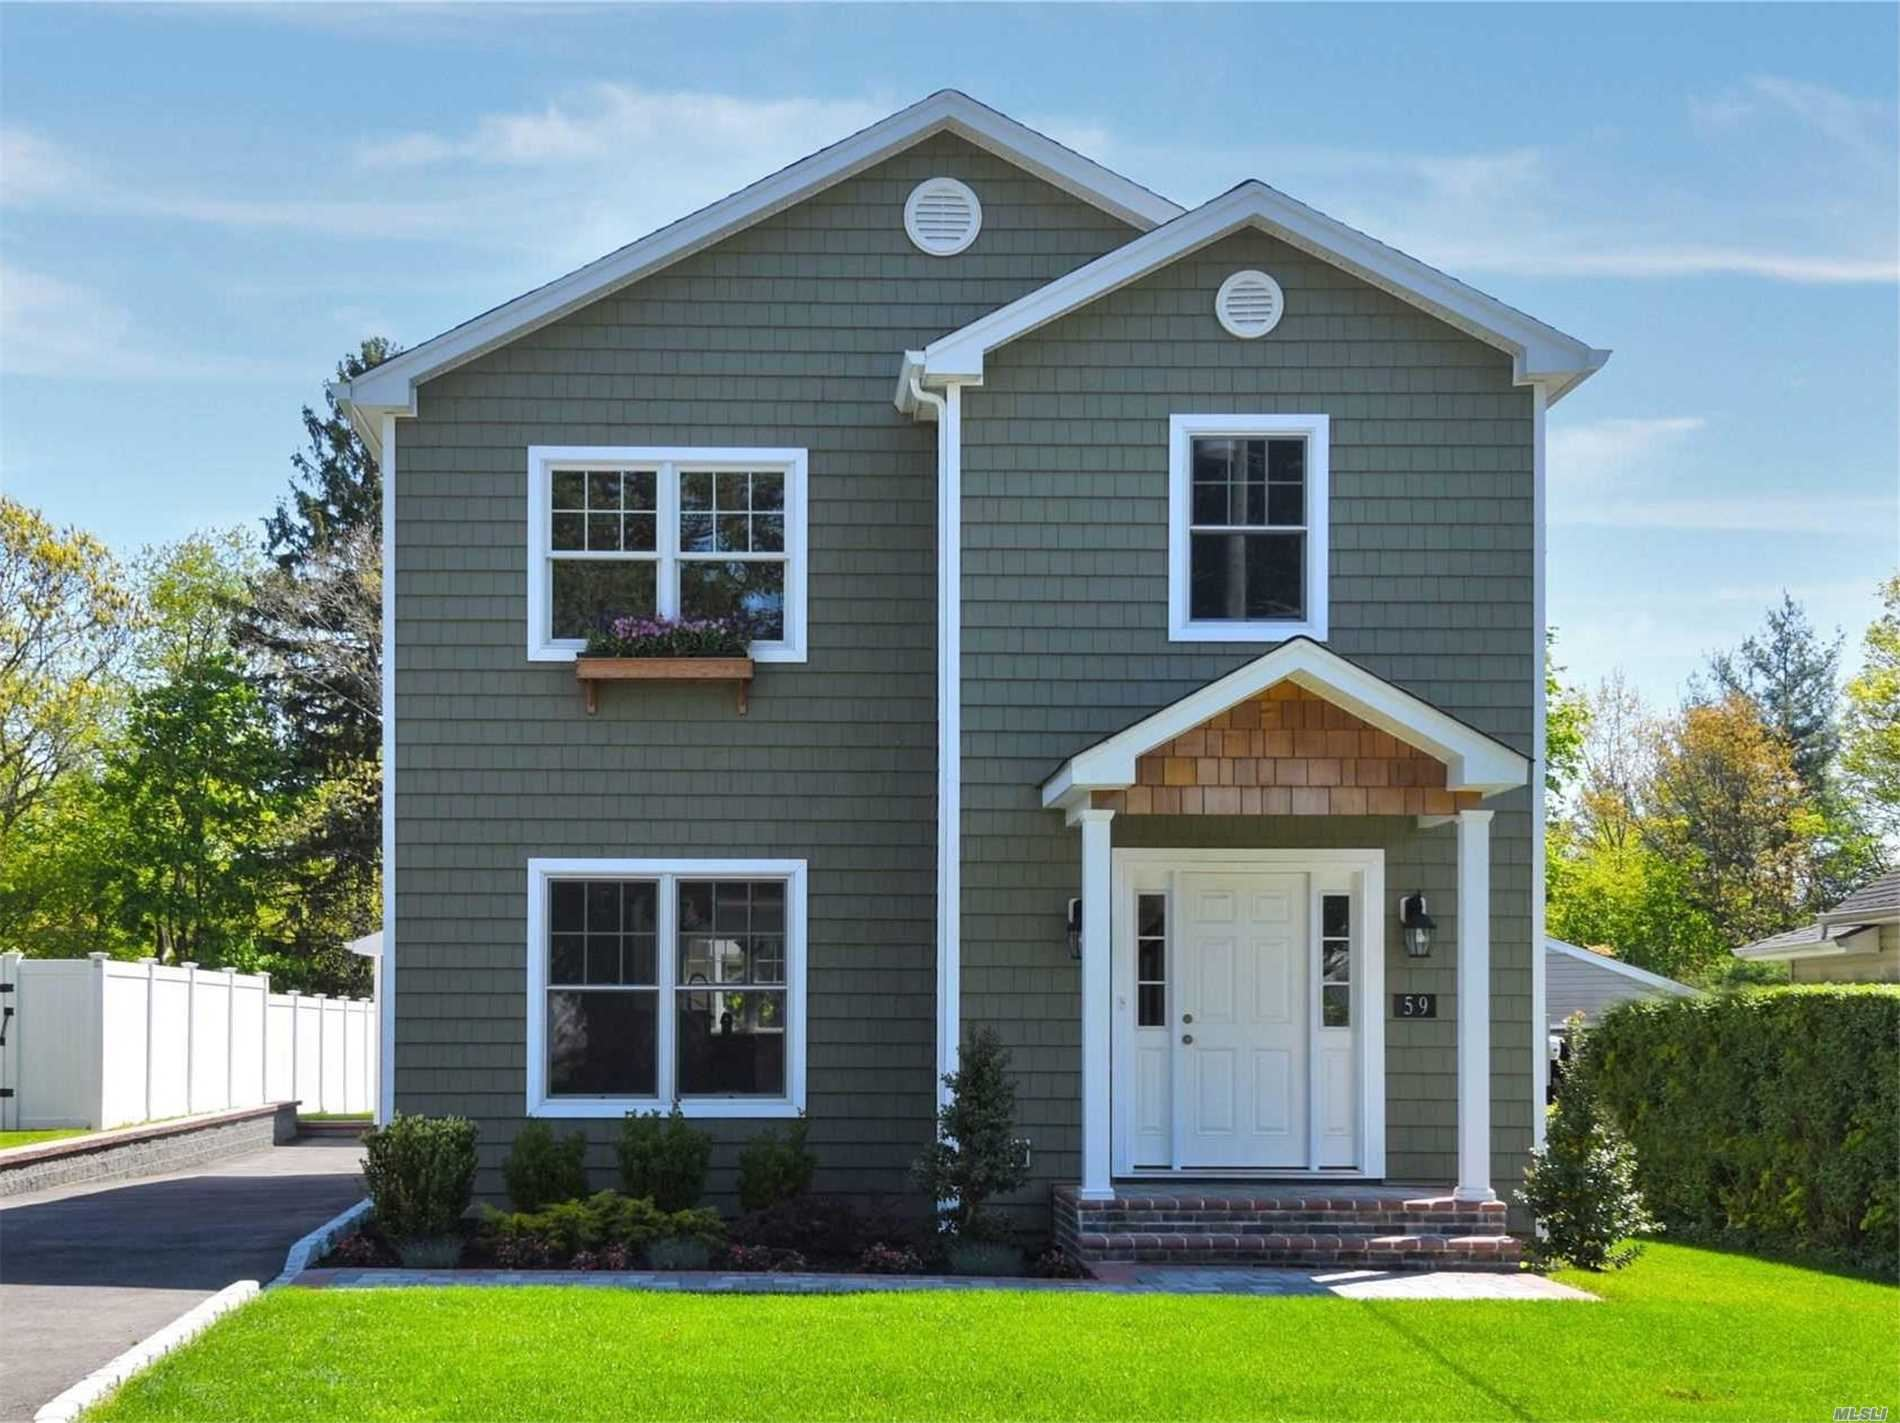 59 Floyd Place, East Norwich, NY 11732 - MLS#: 3215153